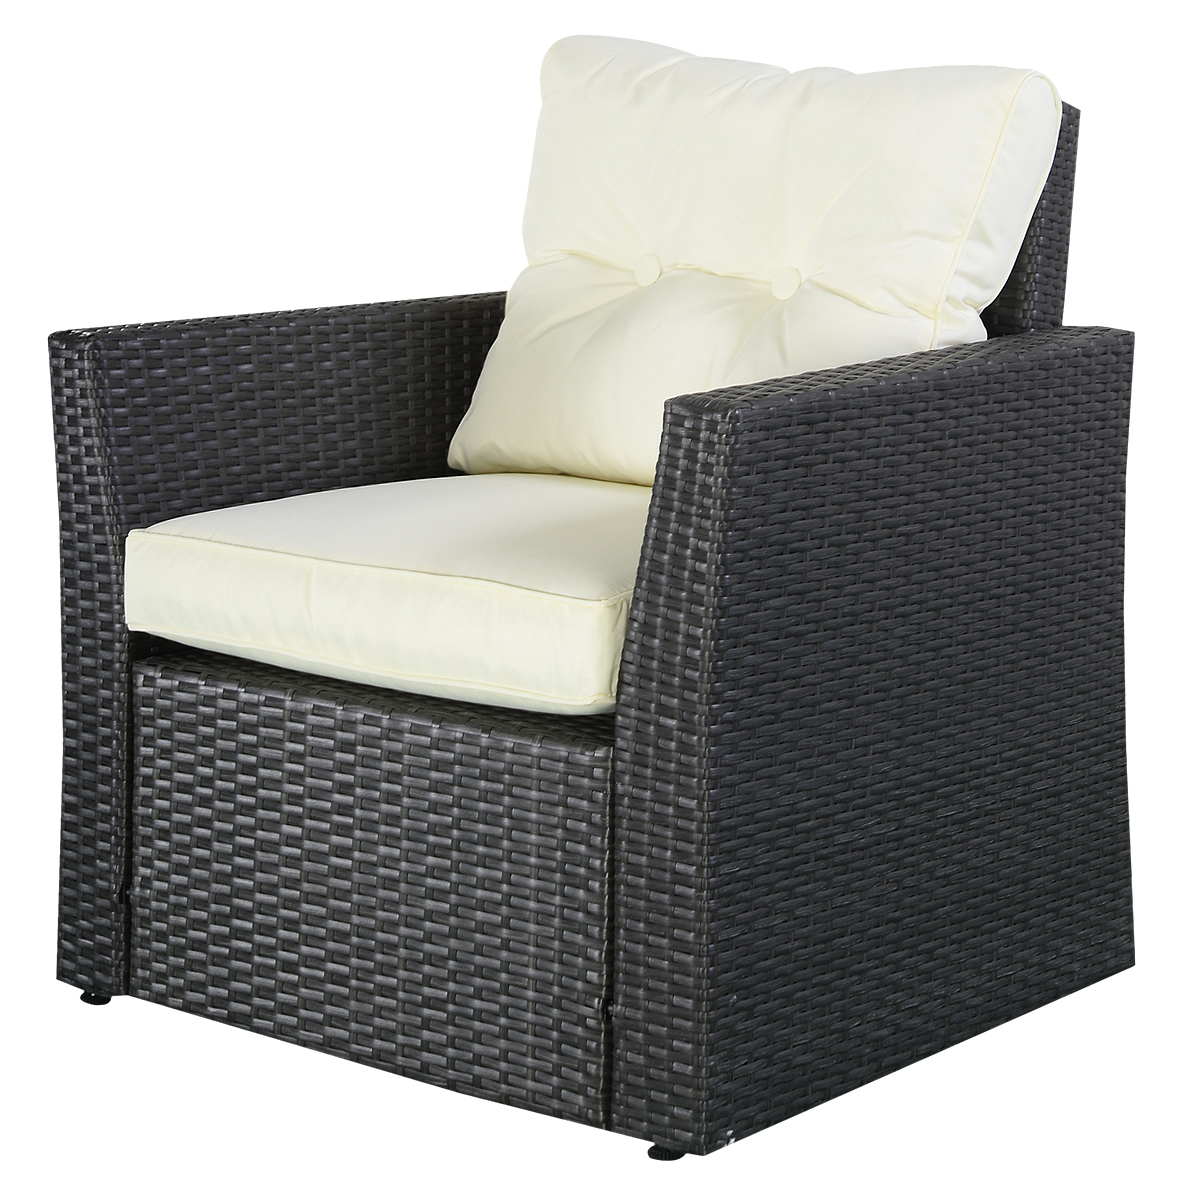 Costway 4Pc Rattan Sofa Furniture Set Patio Garden Lawn Intended For 2017 4Pc Beckett Contemporary Sectional Sofas And Ottoman Sets (View 21 of 25)